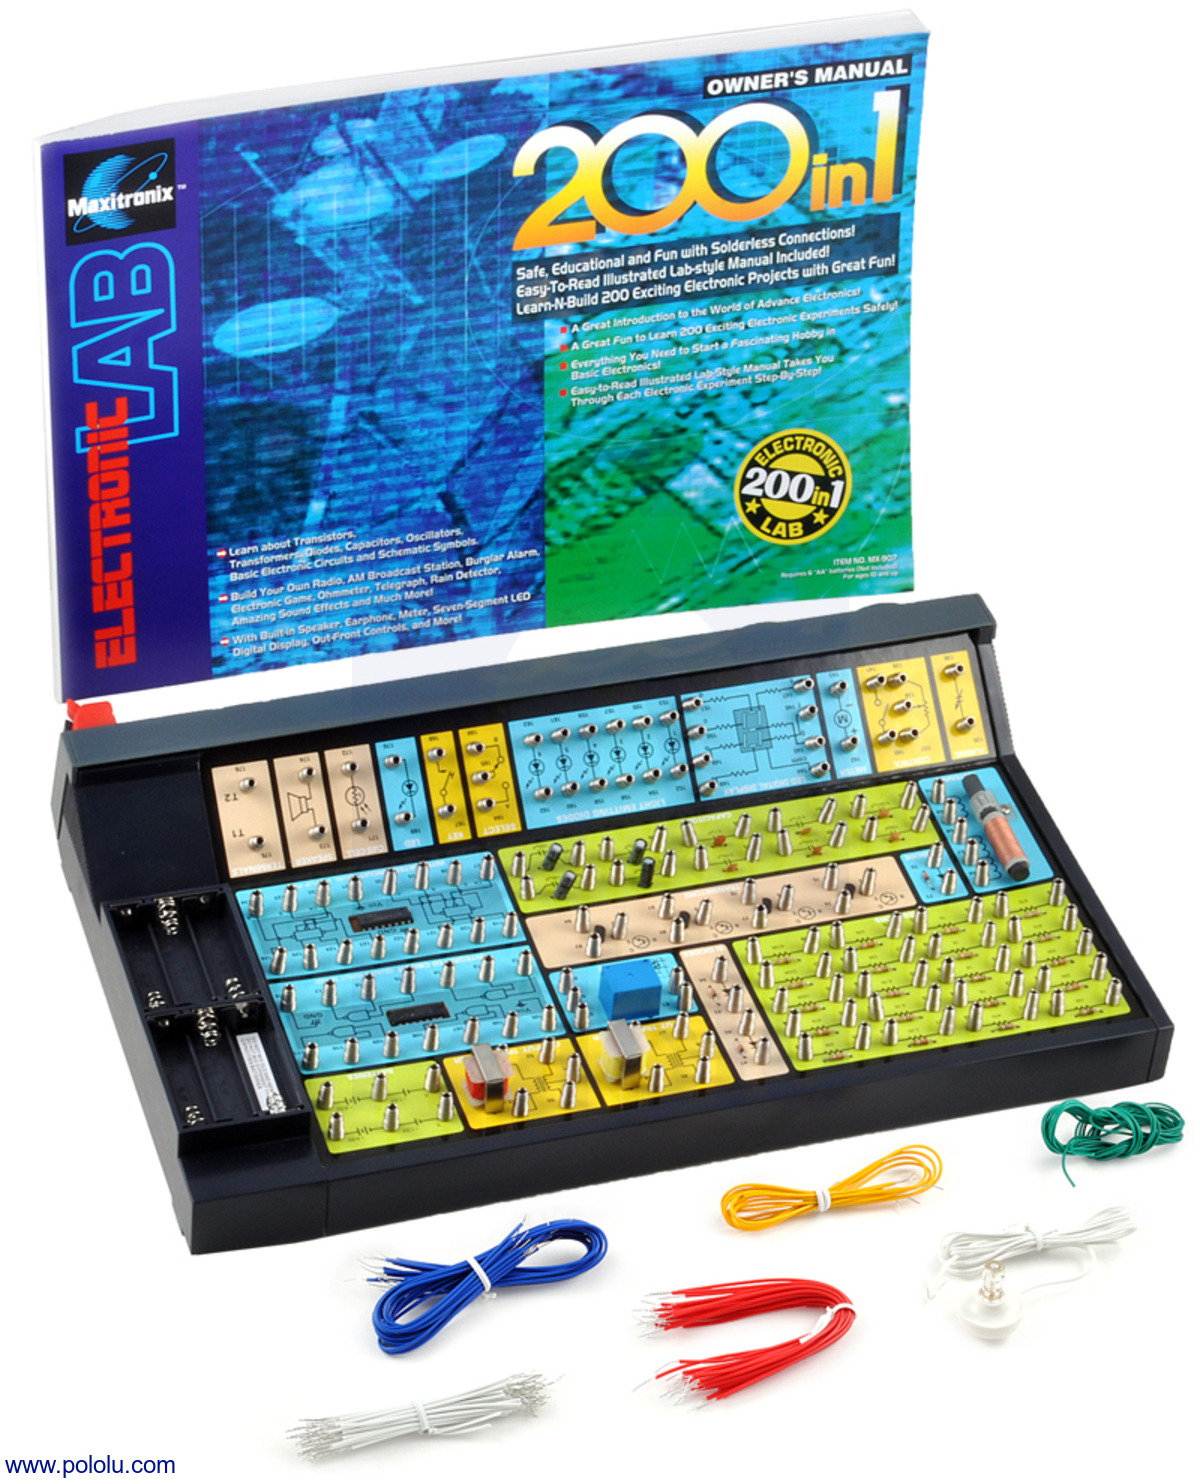 Pololu Elenco 200 In One Electronic Project Lab Electrical Wiring Manual New